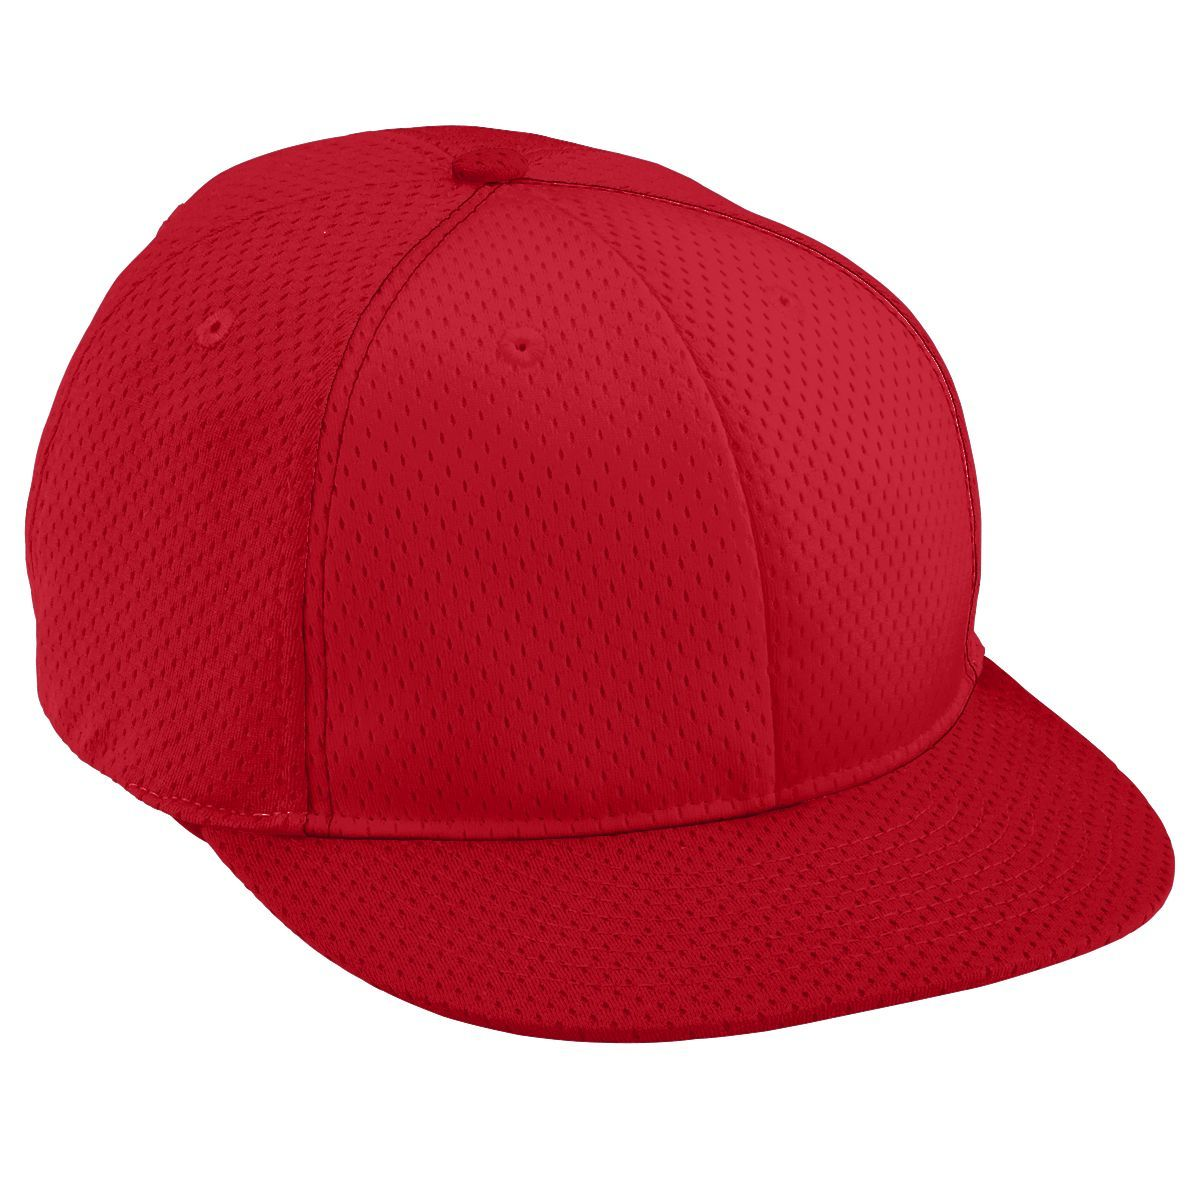 Adult Athletic Mesh Flat Bill Cap - RED/RED/RED